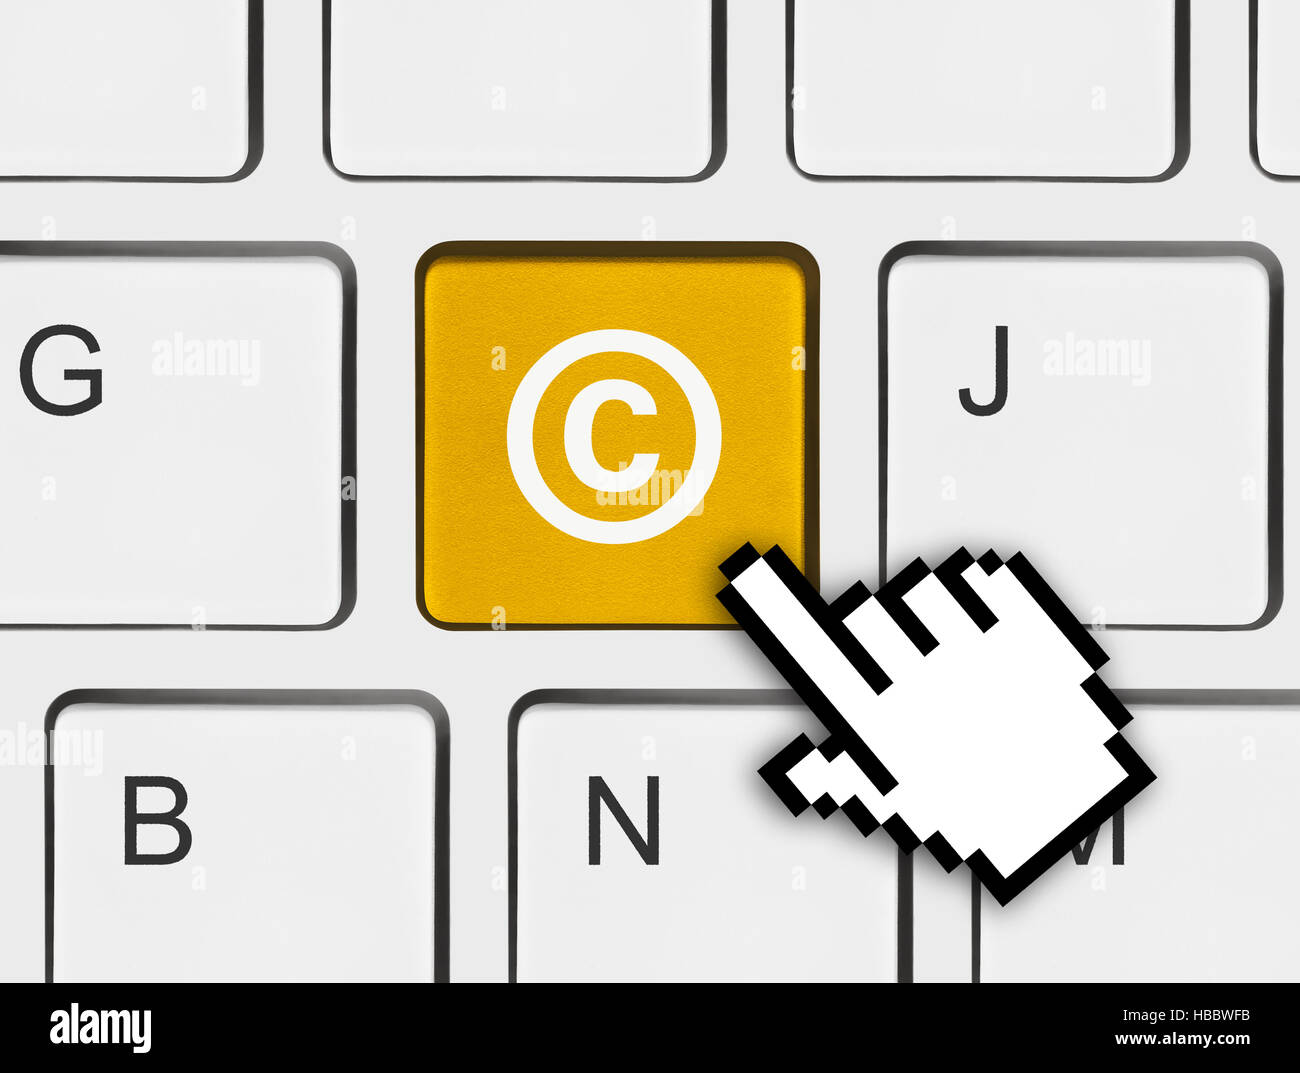 Copyright symbol keyboard gallery symbol and sign ideas computer keyboard with copyright symbol stock photo 127495295 alamy computer keyboard with copyright symbol buycottarizona gallery buycottarizona Images